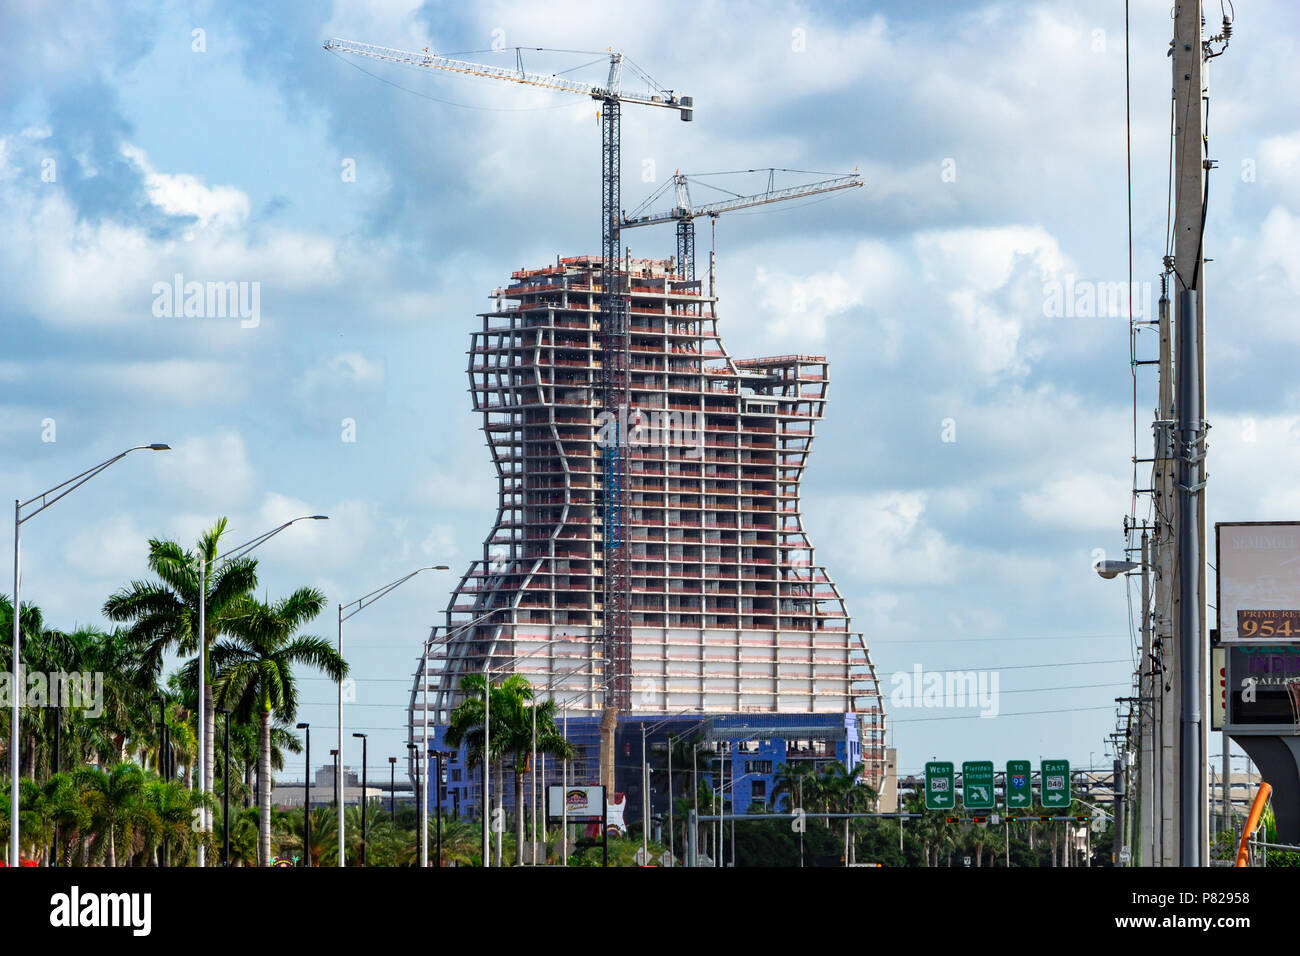 New hotel under construction at Seminole Hard Rock Casino, all floors in place. The largest guitar shaped building in the world - Hollywood, Florida - Stock Image